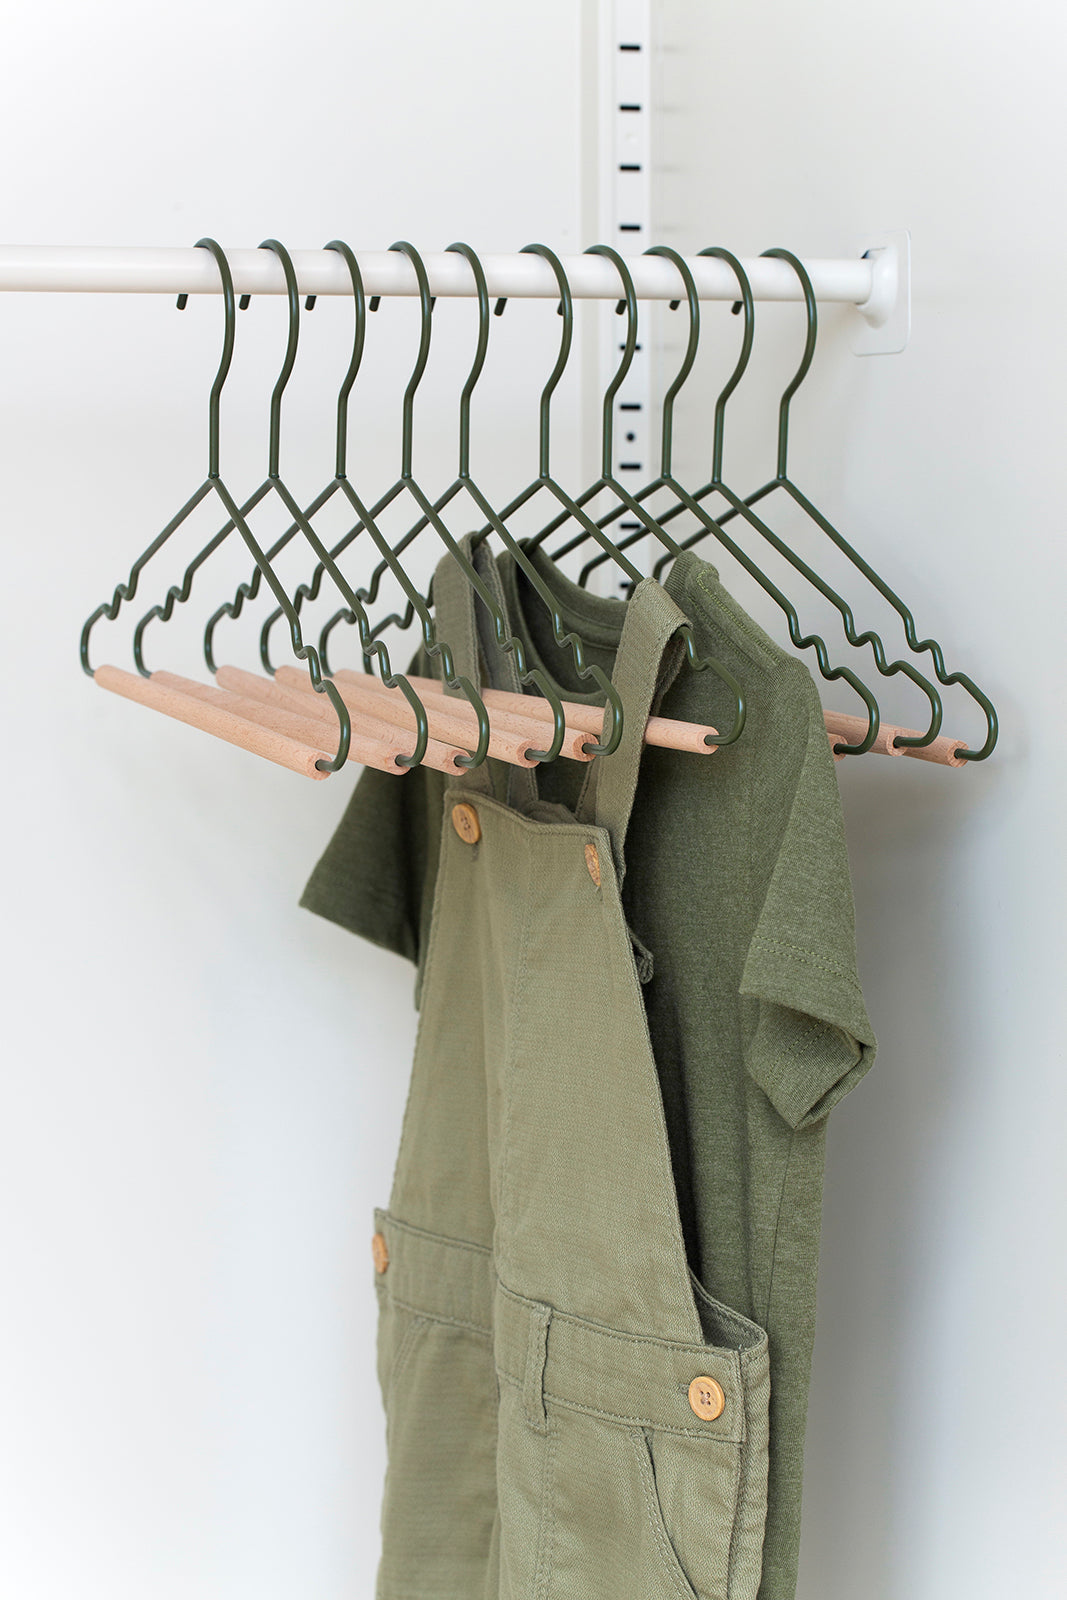 Kids Top Hangers in Olive